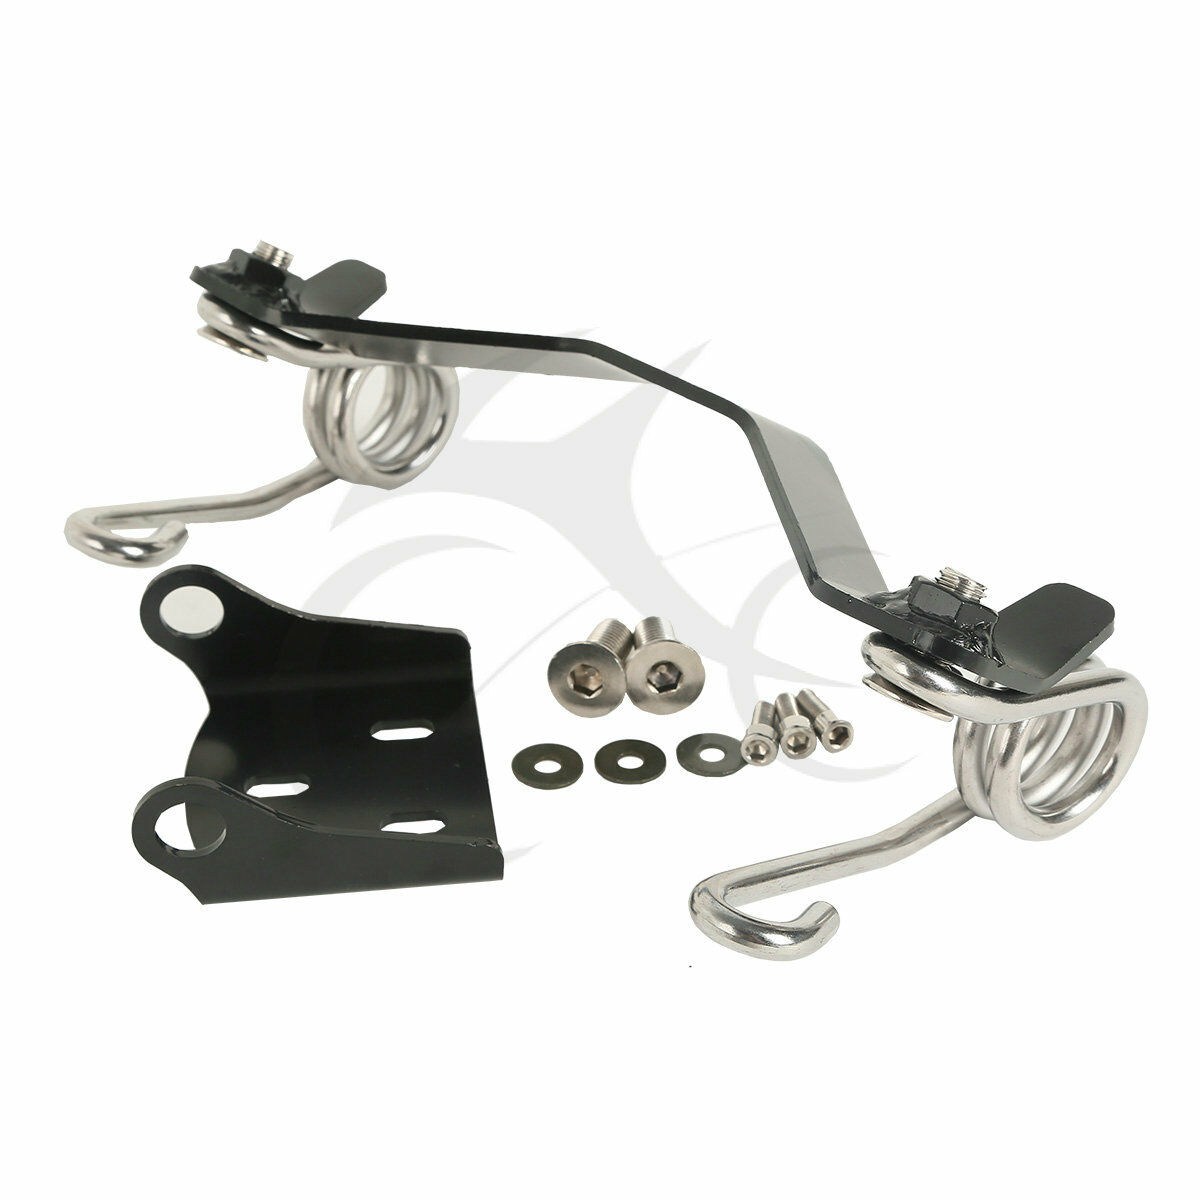 Motorcycle New Seat Mounting Kit Spring Support Bracket For Harley Sportster 1200 883 10-16 Iron 48